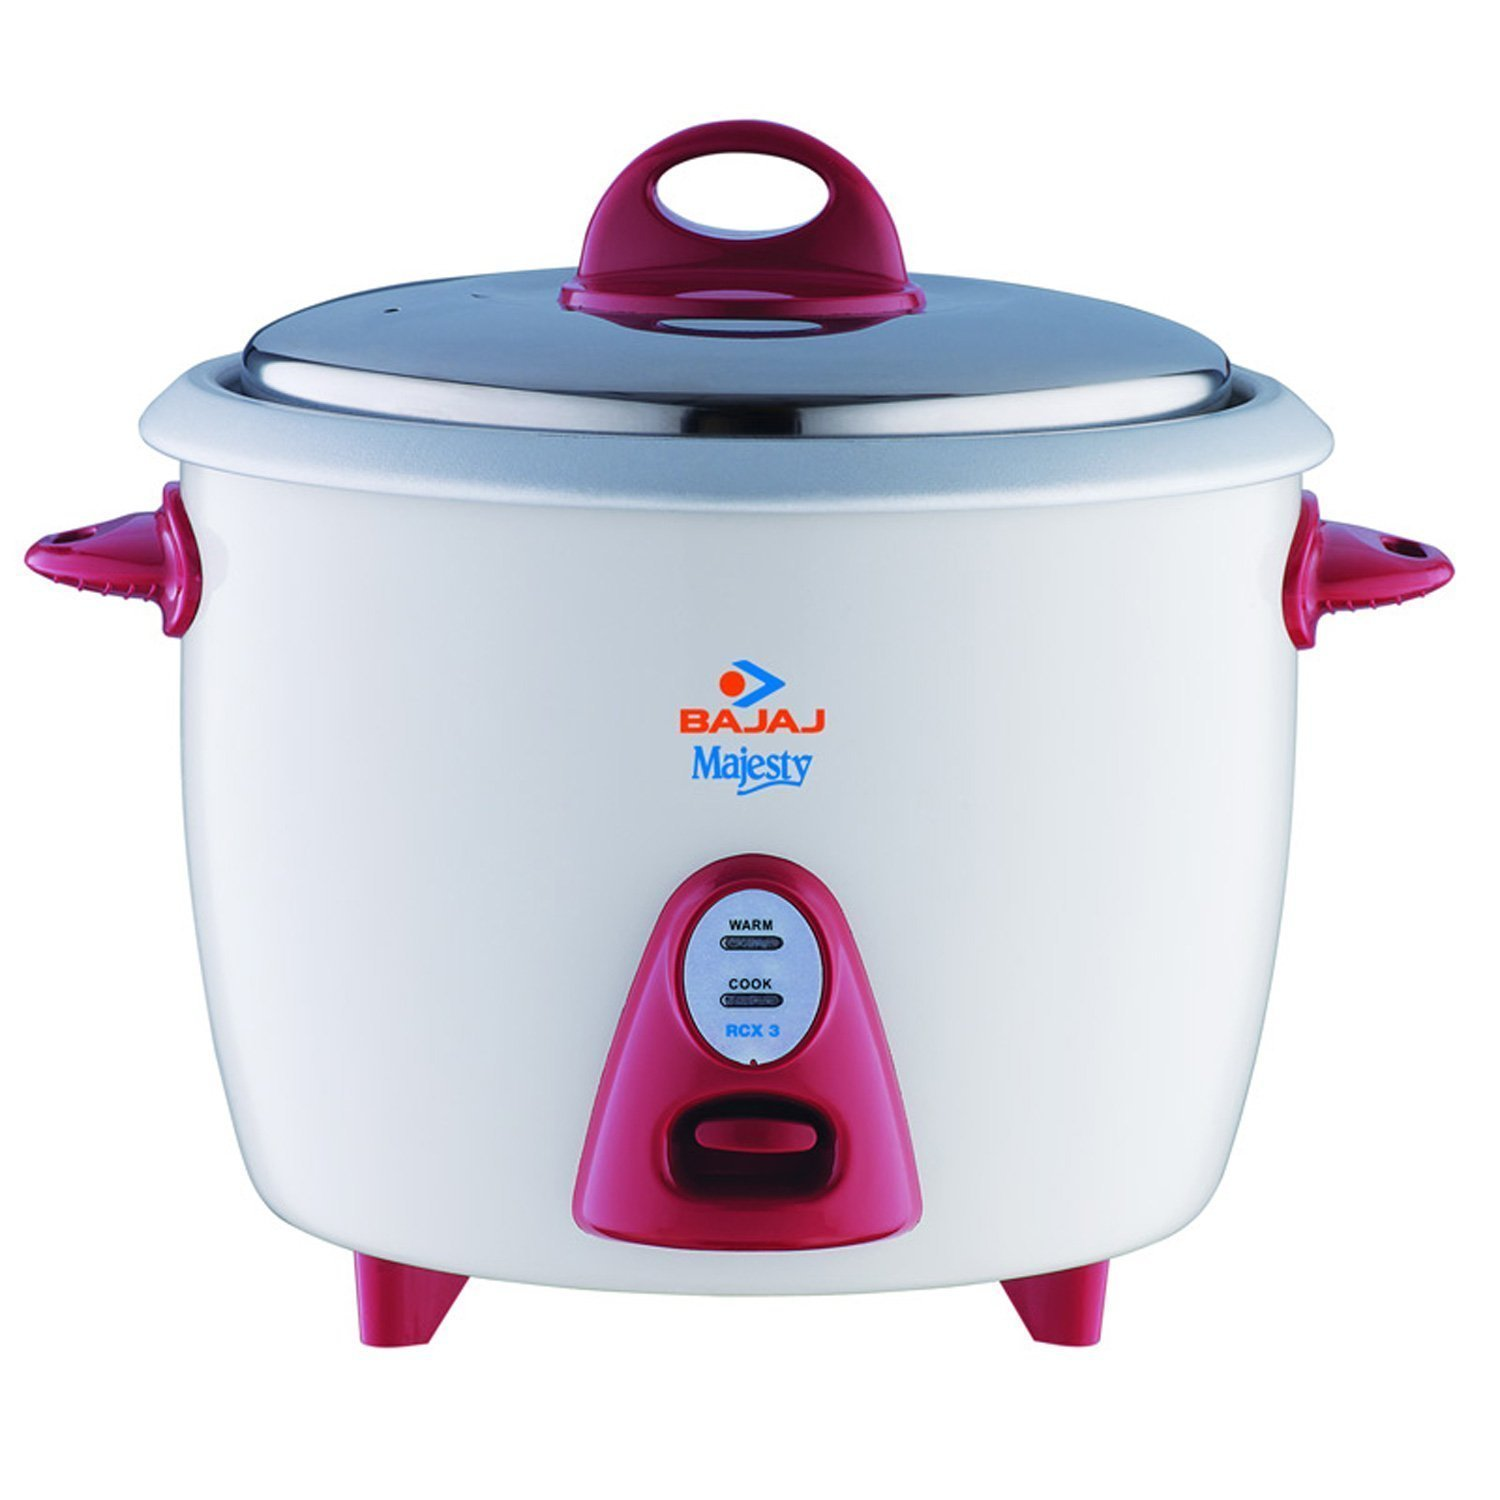 Bajaj Majesty New RCX 3 350-Watt Multifunction Rice Cooker